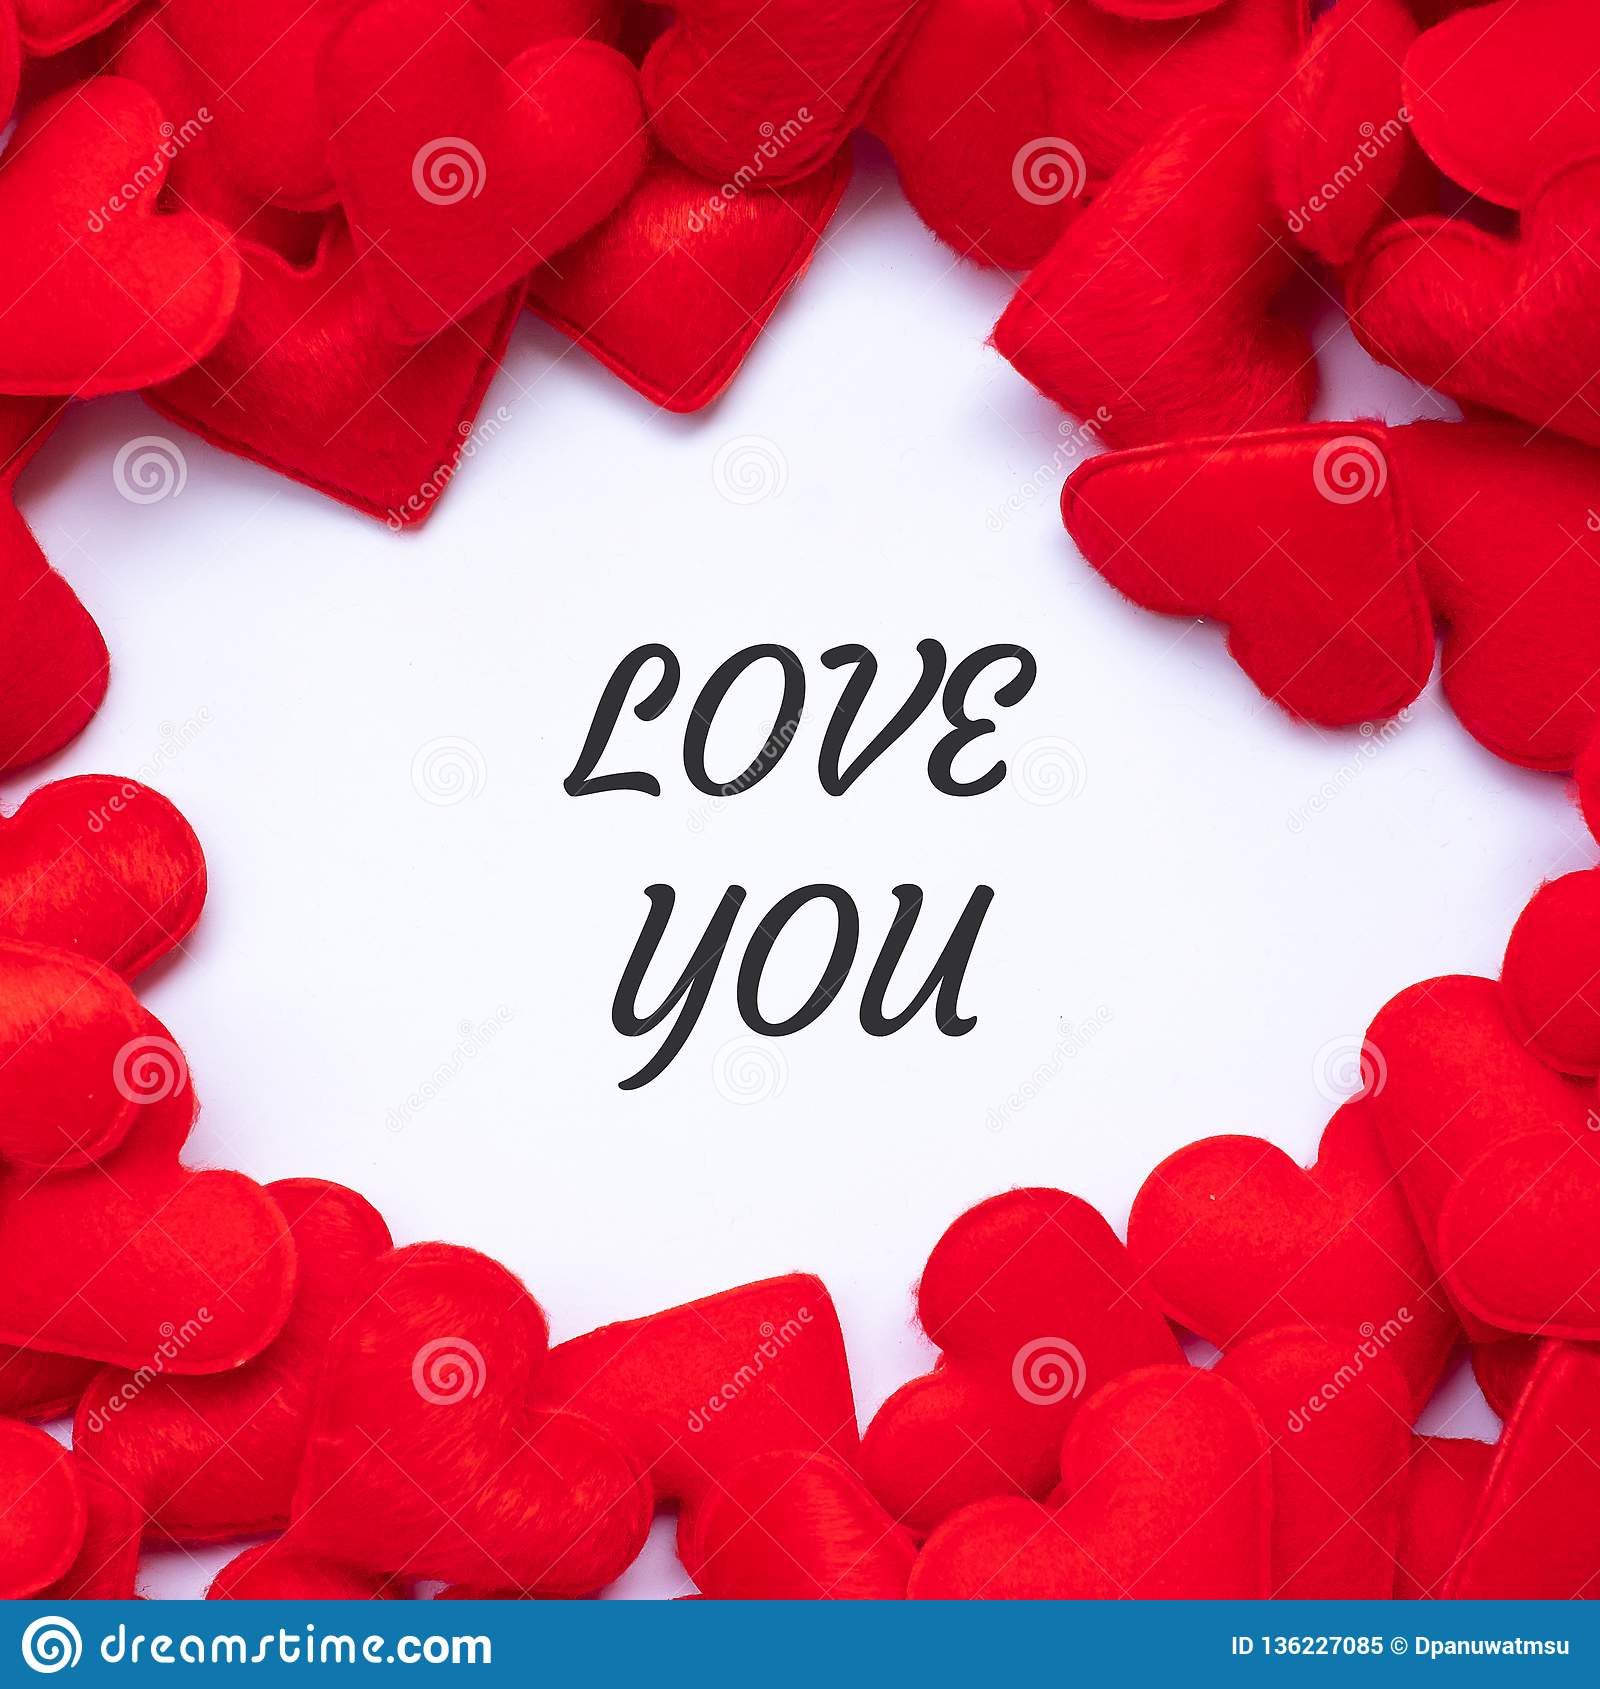 LOVE YOU word with red heart shape decoration background. Love, Wedding, Romantic and Happy Valentine' s day holiday